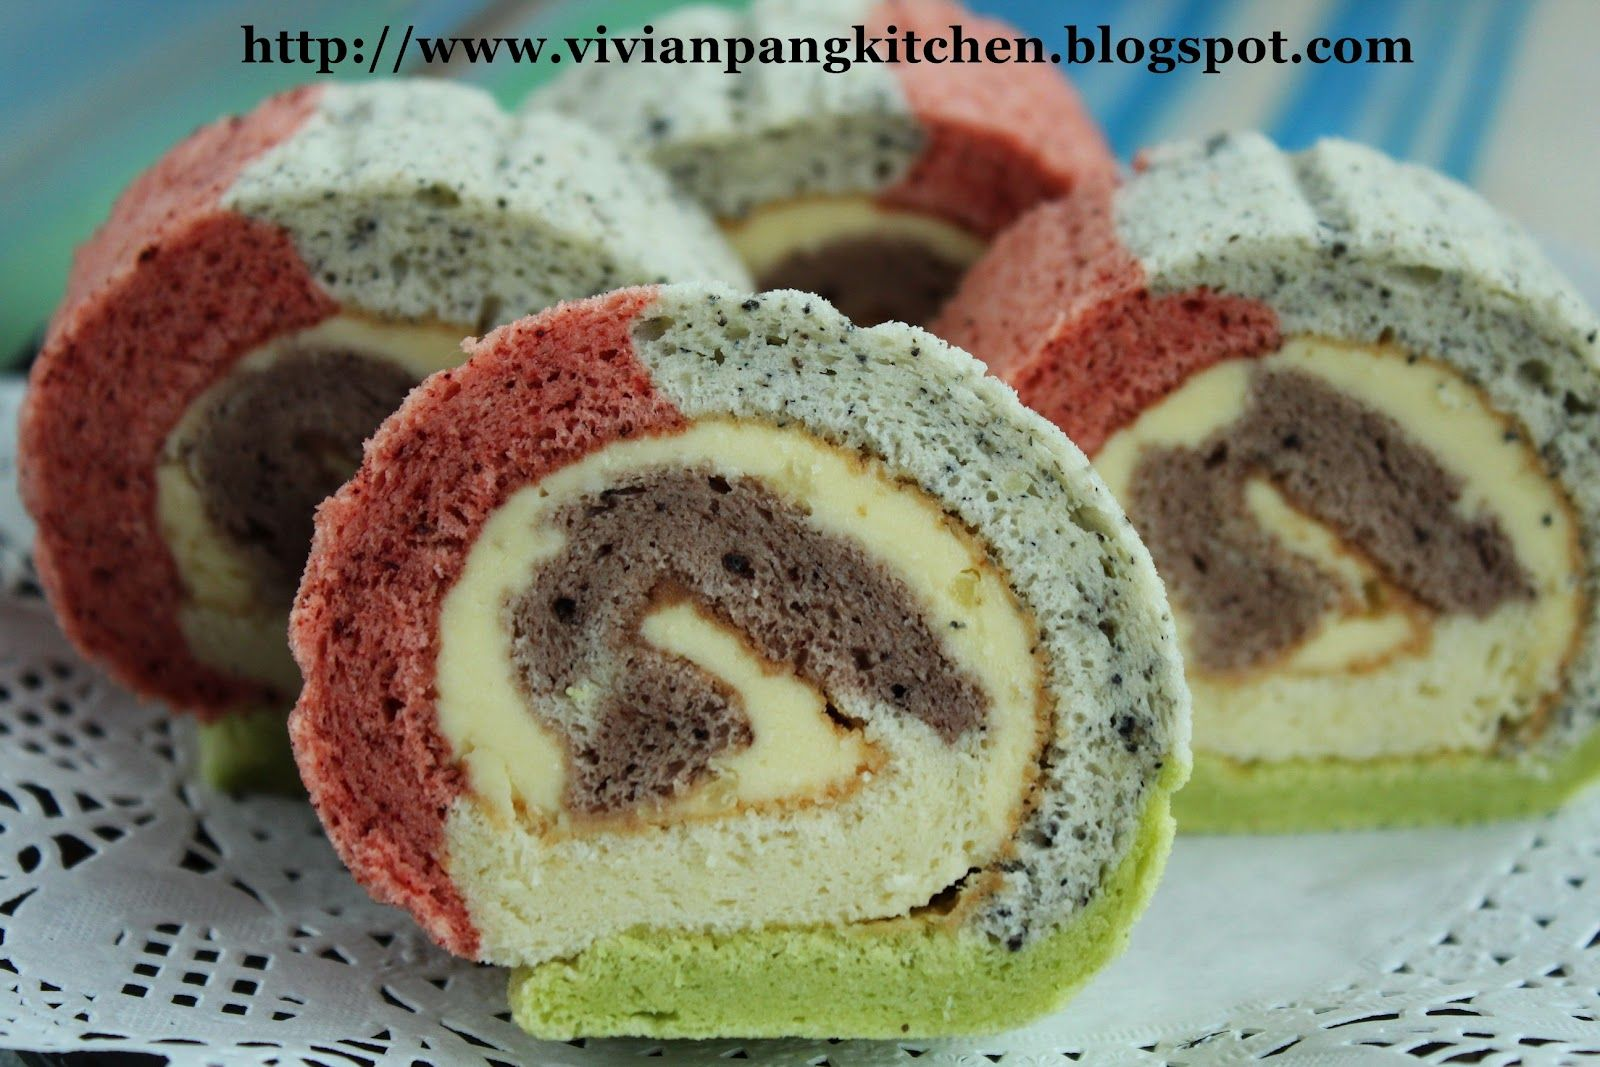 Rainbow Swiss Roll with Natural Colouring